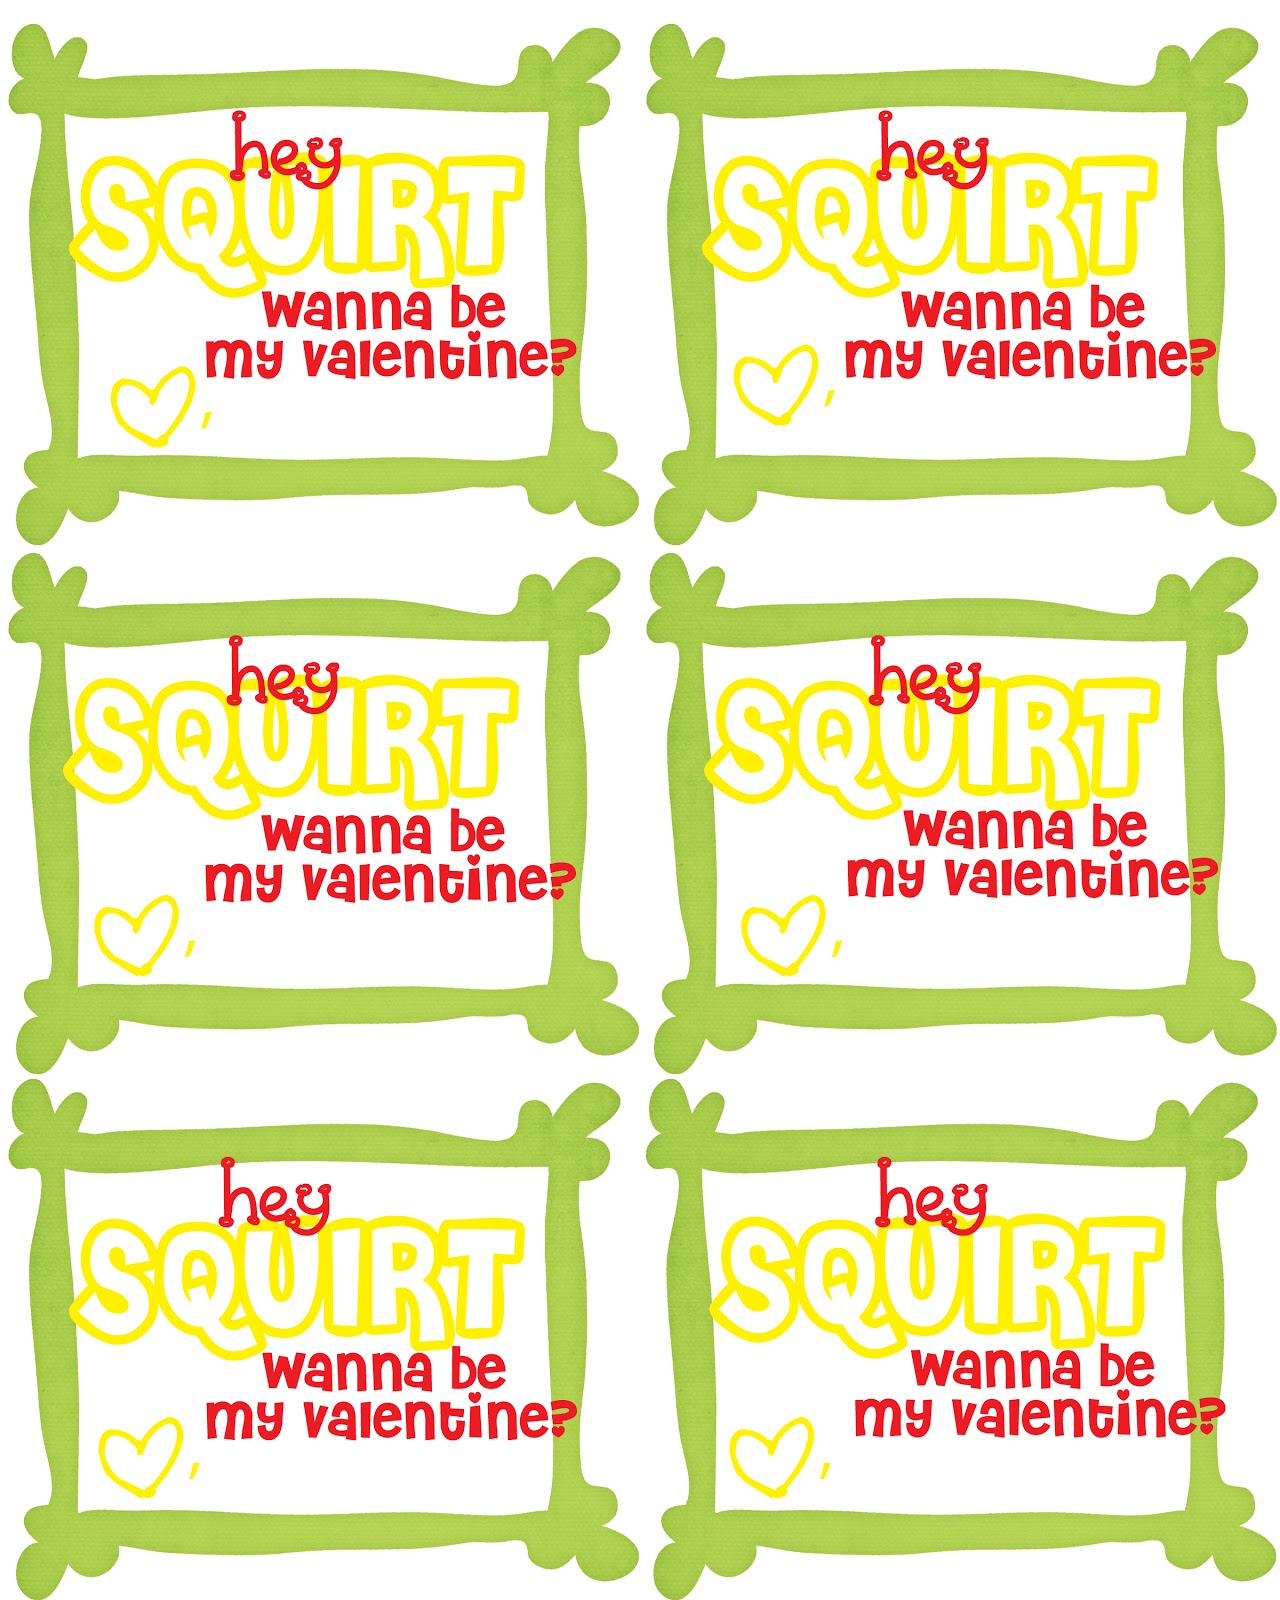 """Here is """"hey squirt -wanna be my valentine?"""""""